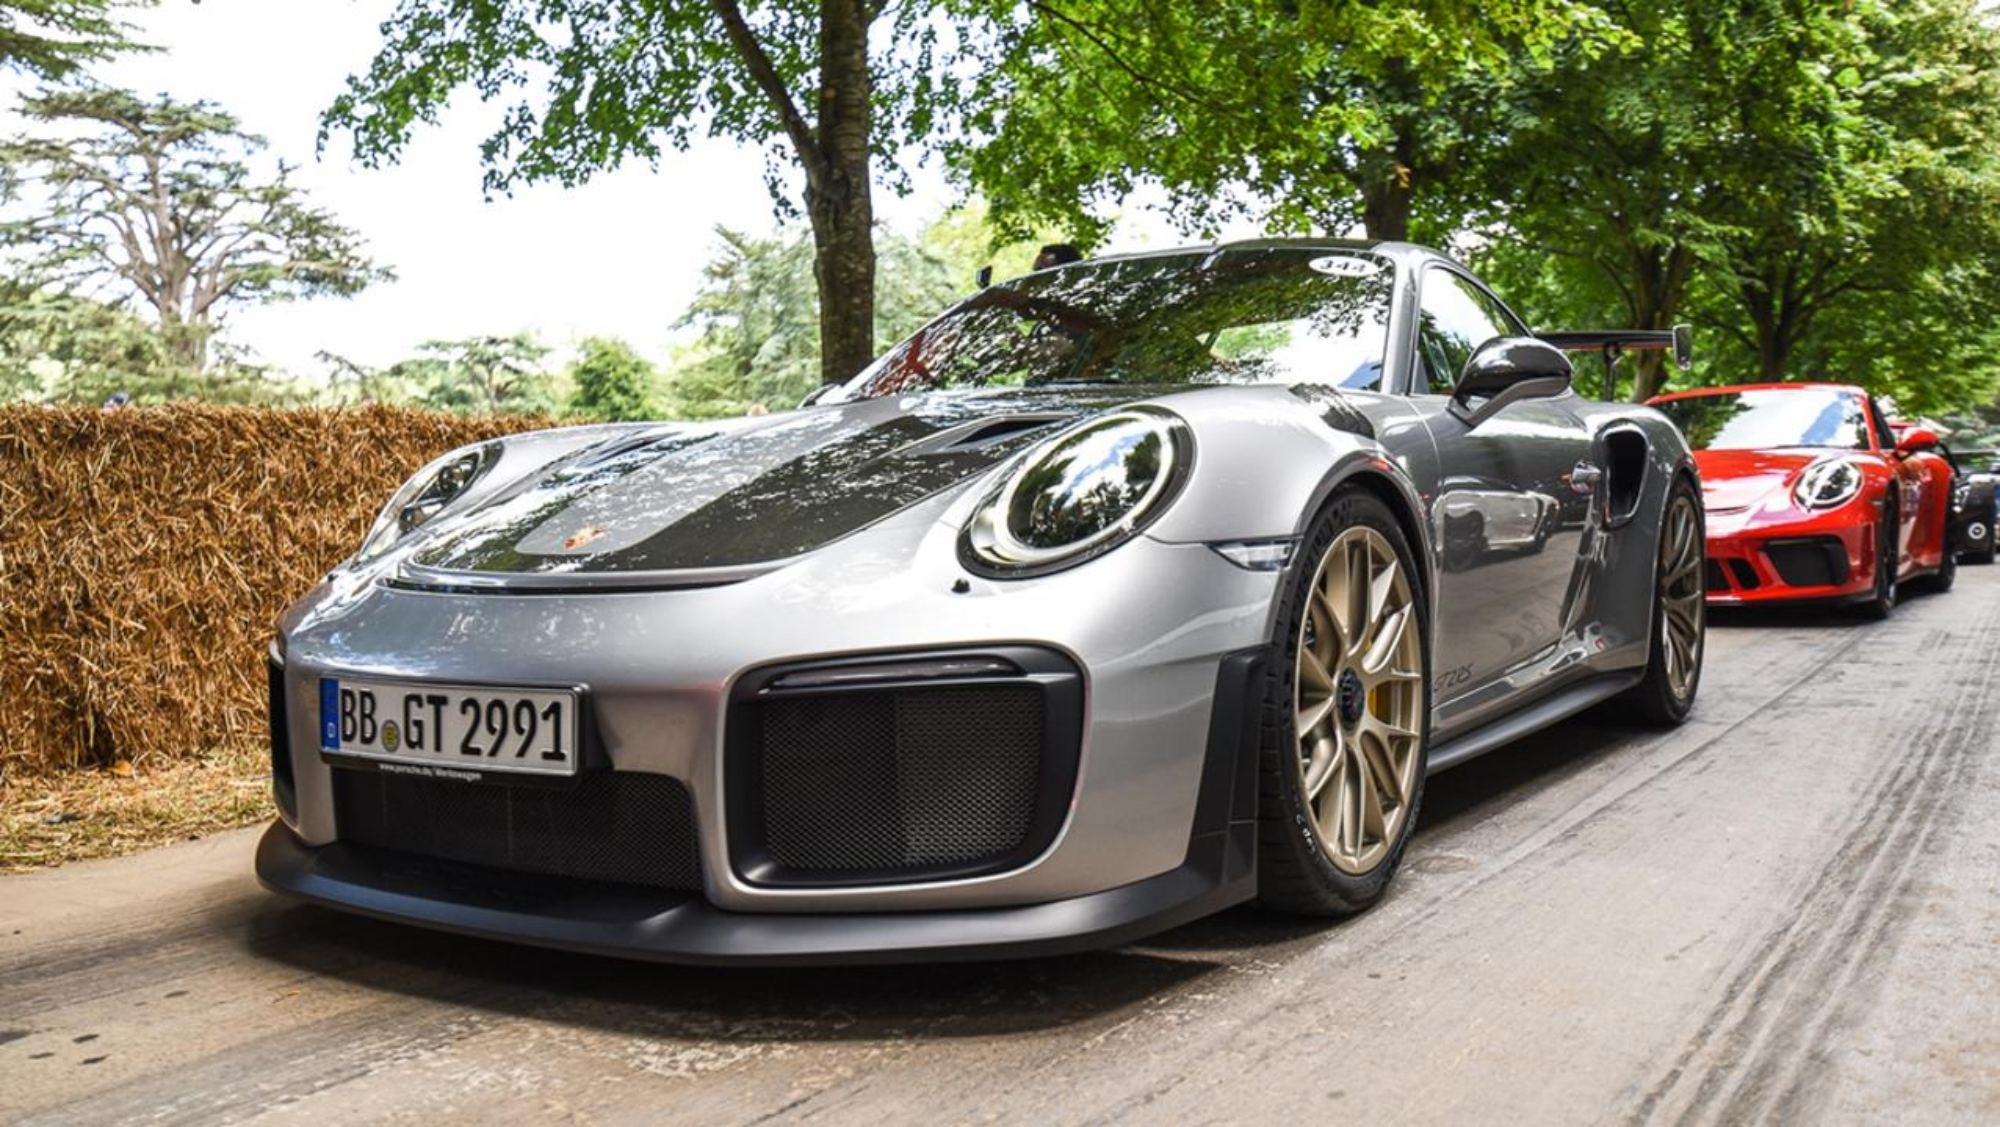 Porsche 911 GT2 RS Gets Full Reveal At Goodwood Thumbnail